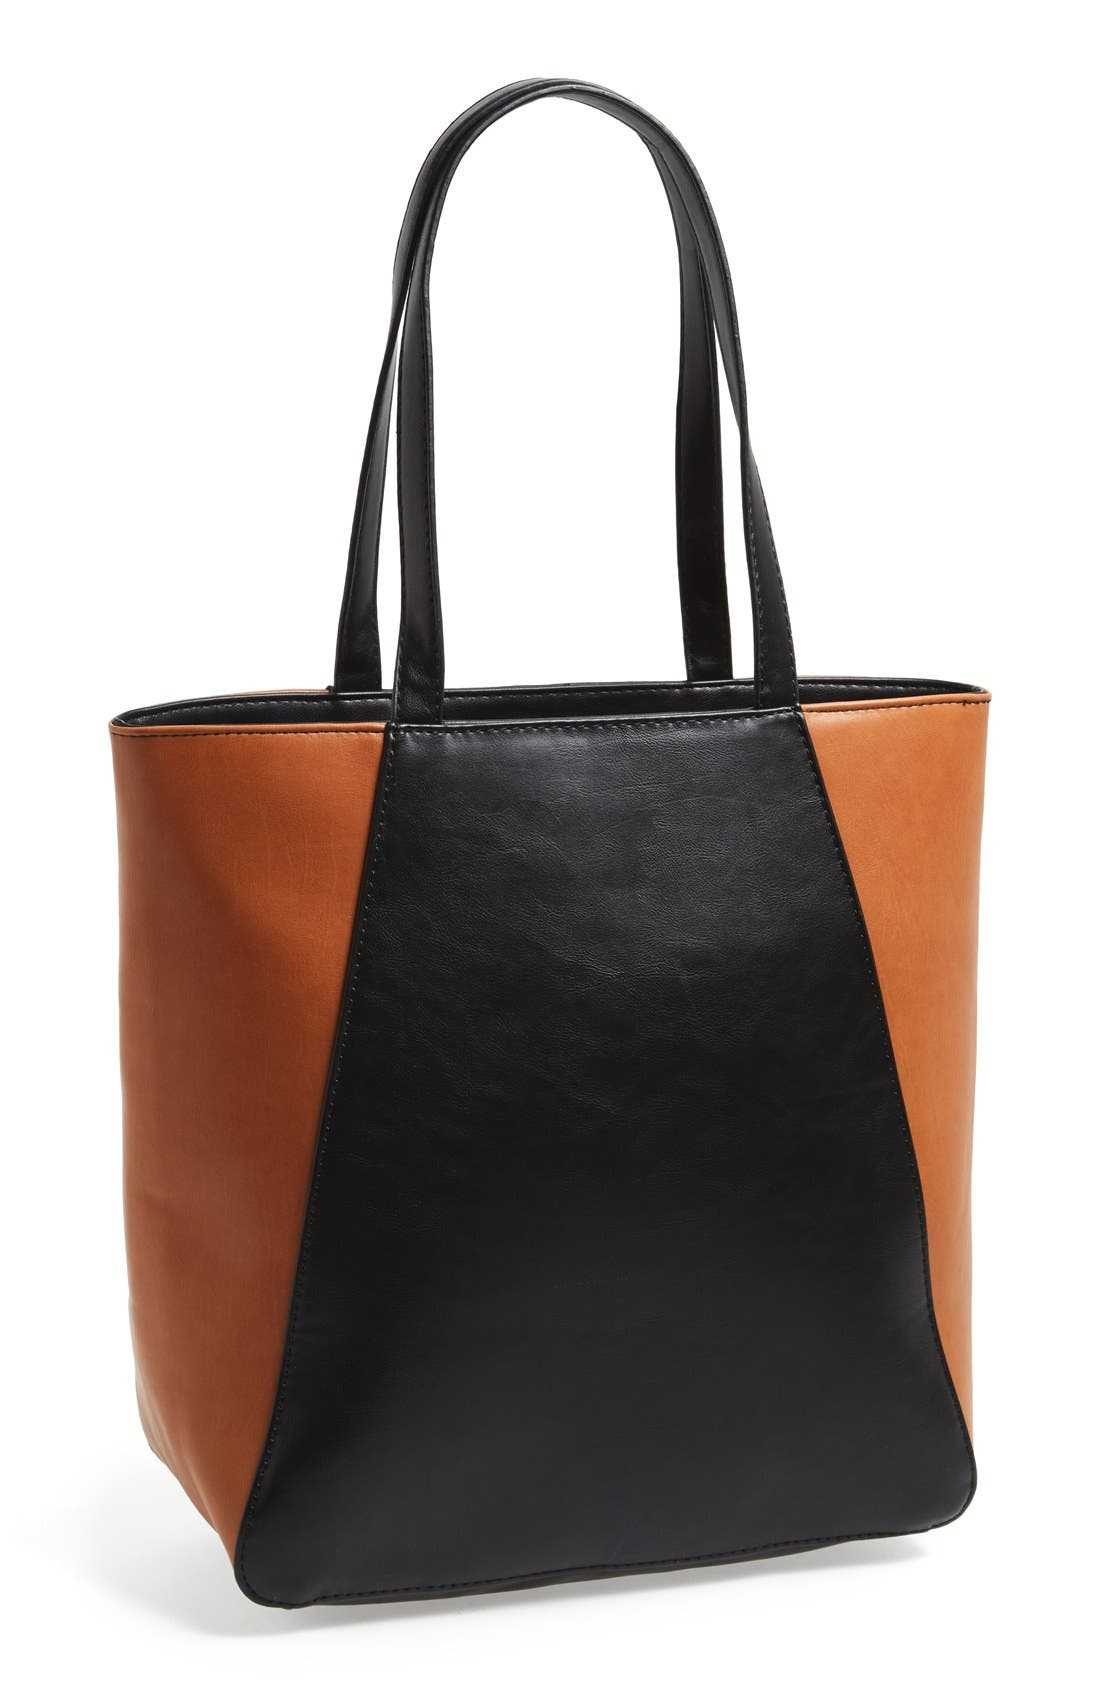 SOLE SOCIETY, Faux Leather Tote, Main thumbnail 1, color, 001